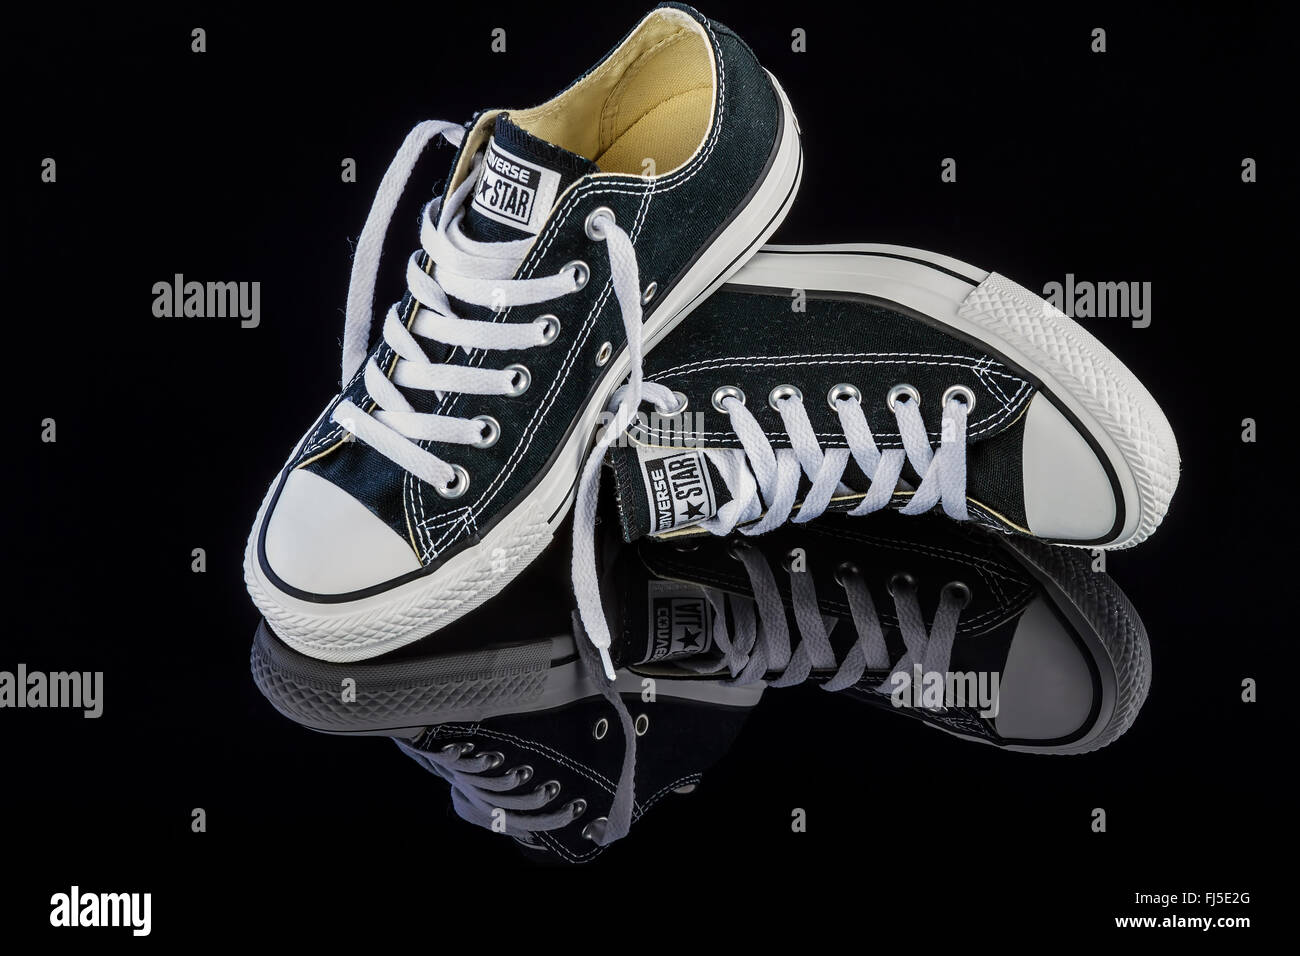 estas importar Groenlandia  Converse Shoes High Resolution Stock Photography and Images - Alamy